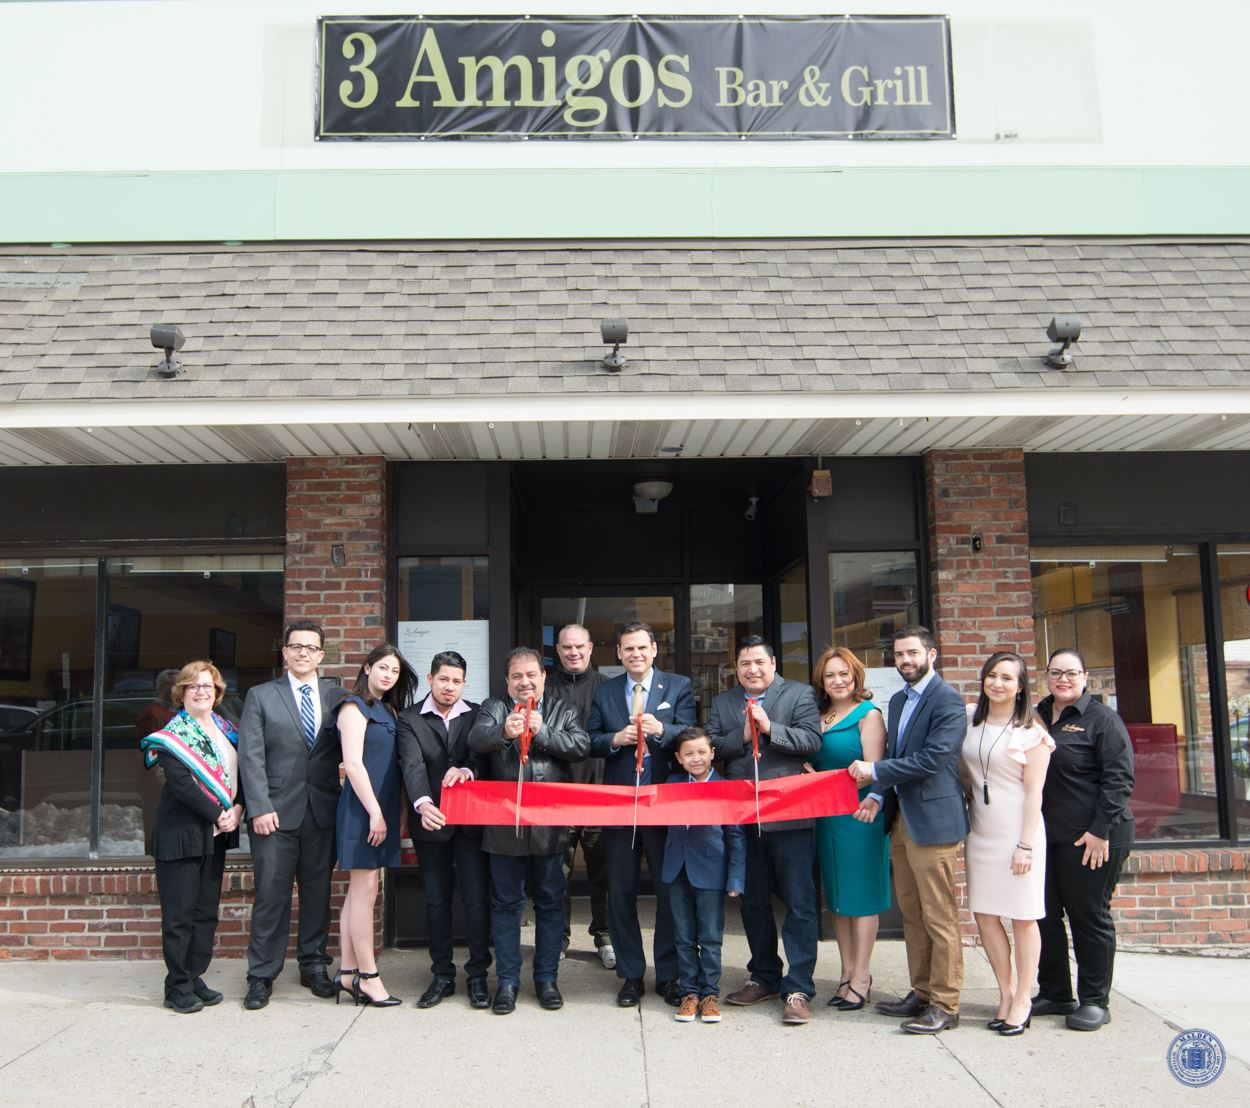 3 Amigos Bar and Grill Building